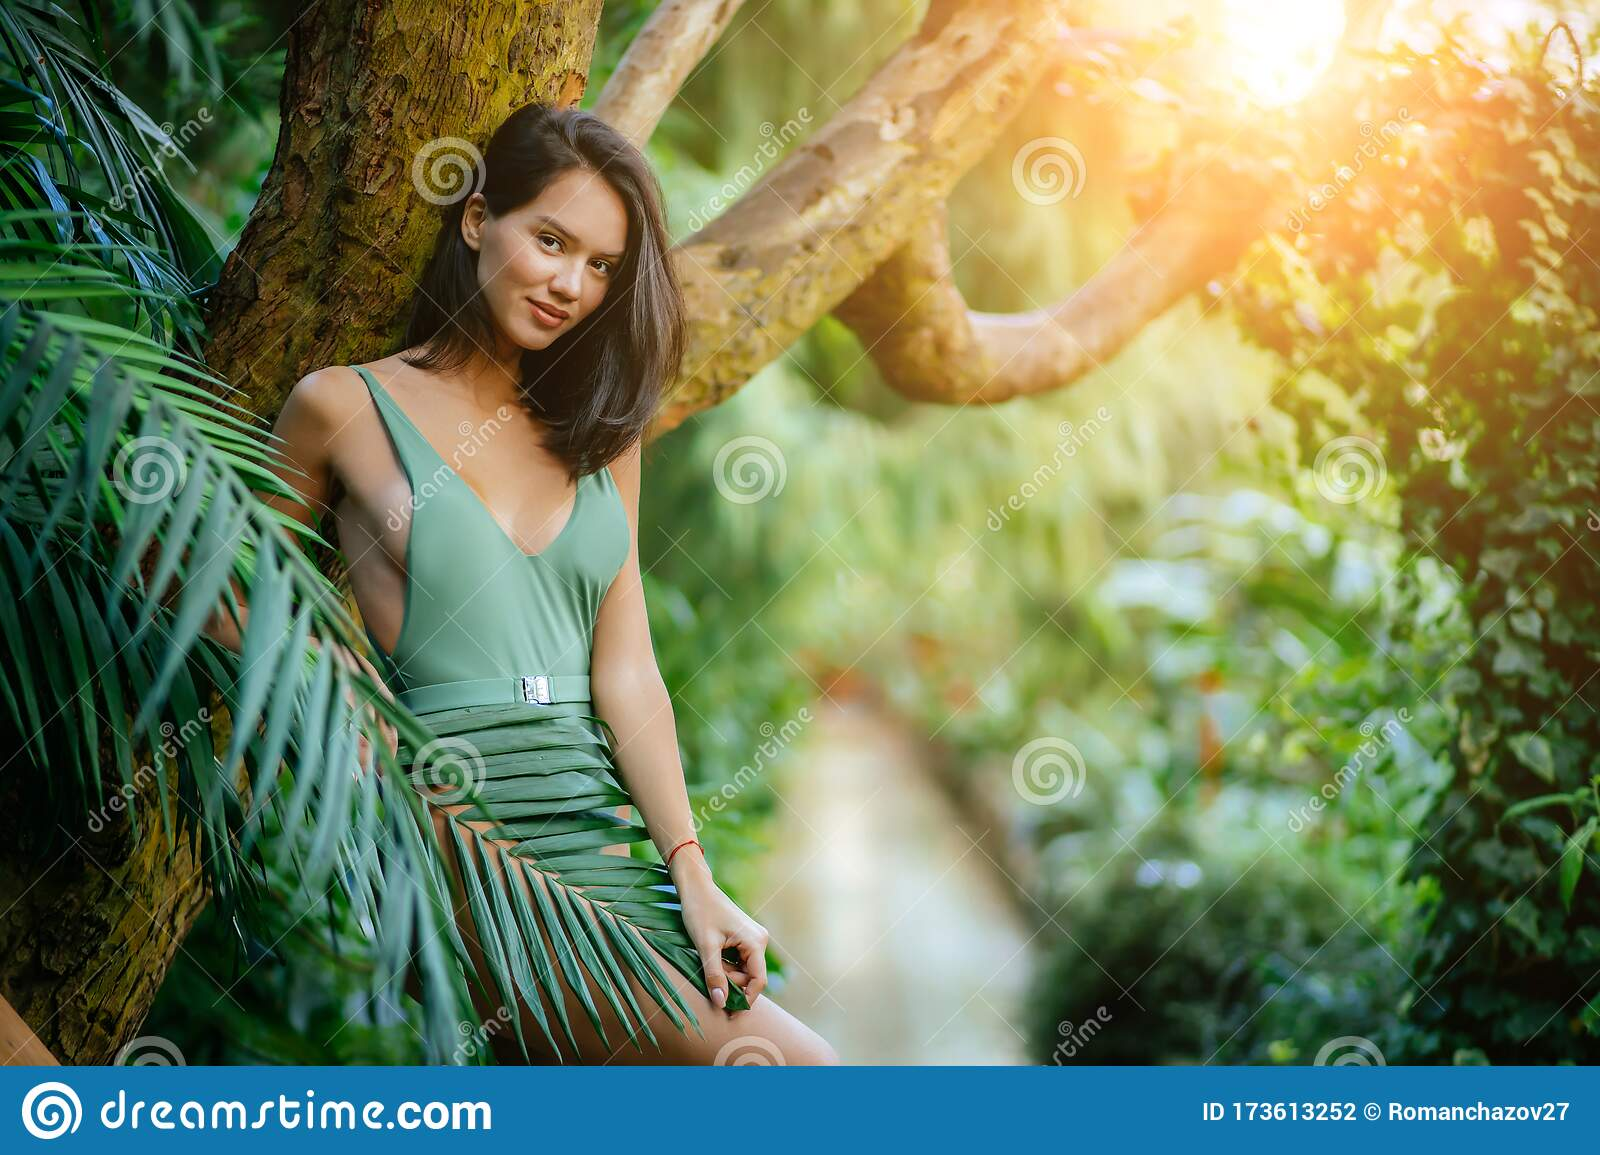 Beautiful Model With Natural Beauty In Rainforest Stock Photo Image Of Caucasian Cosmetics 173613252